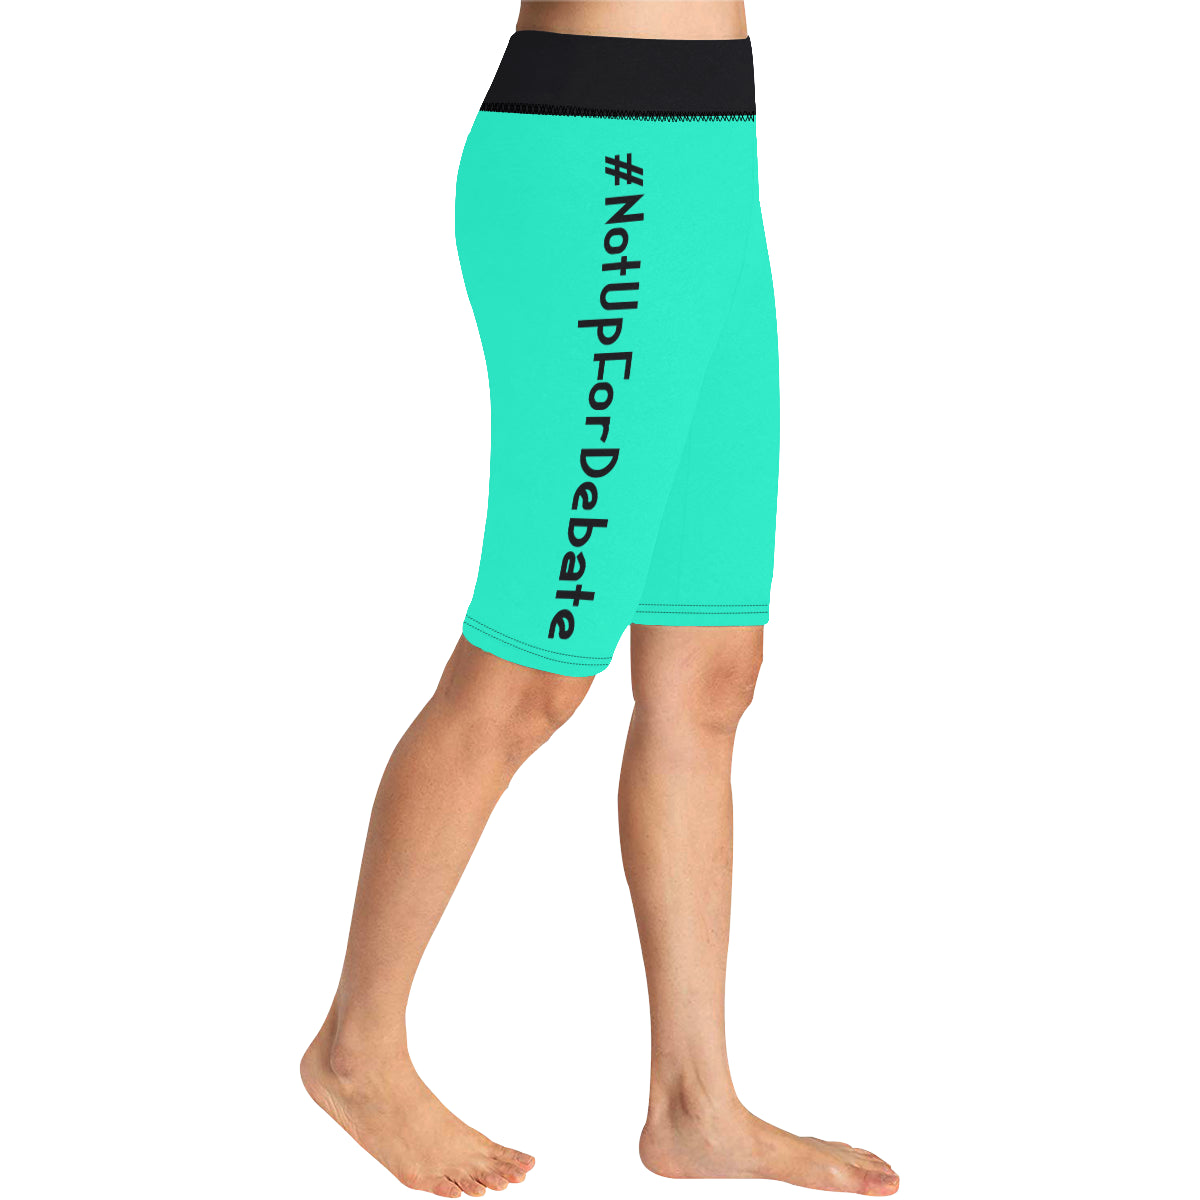 BJai Nufd Teal Knee Length Leggings